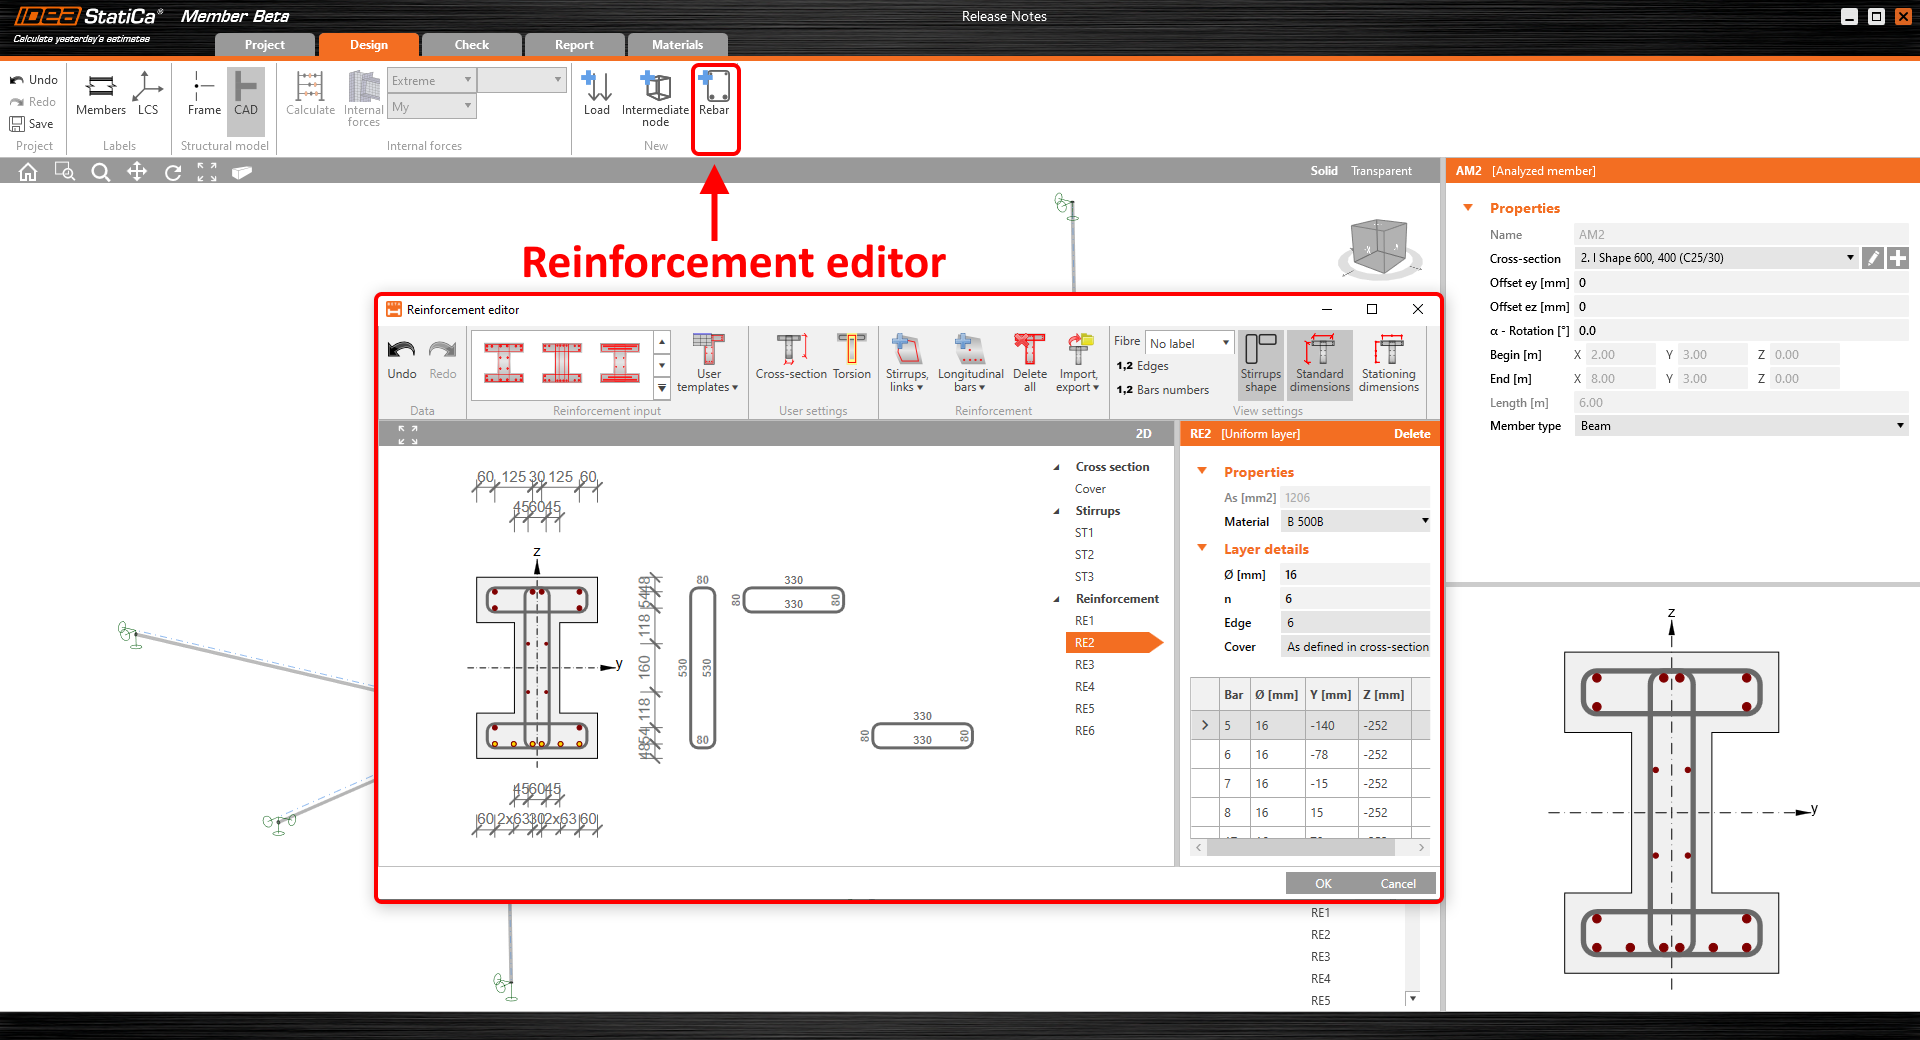 Reinforcement editor in concrete member